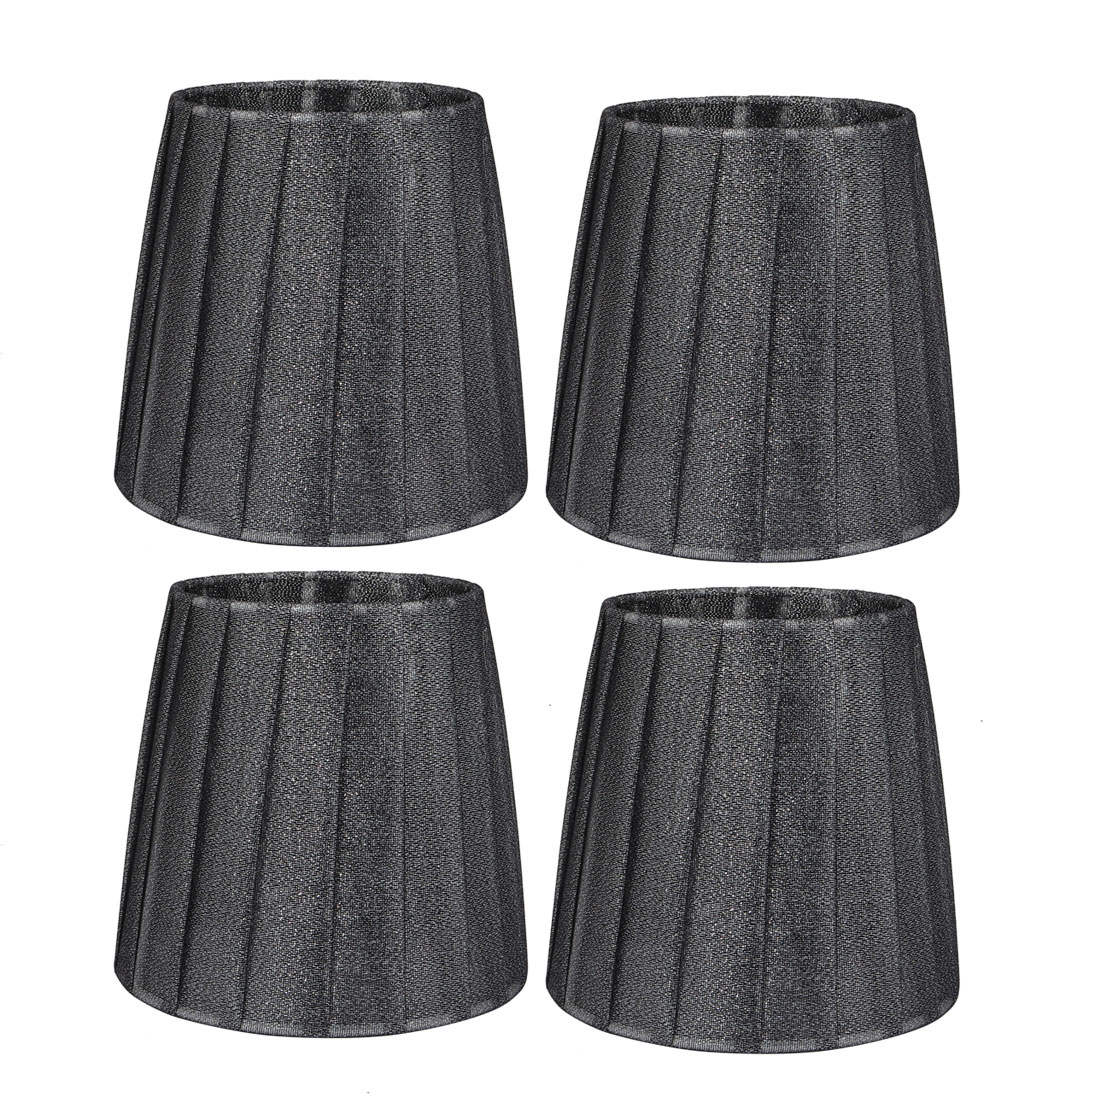 4pcs 110mmx150mmx140mm E14 Dark Grey Lamp Shade Lamp Cover for Home Office